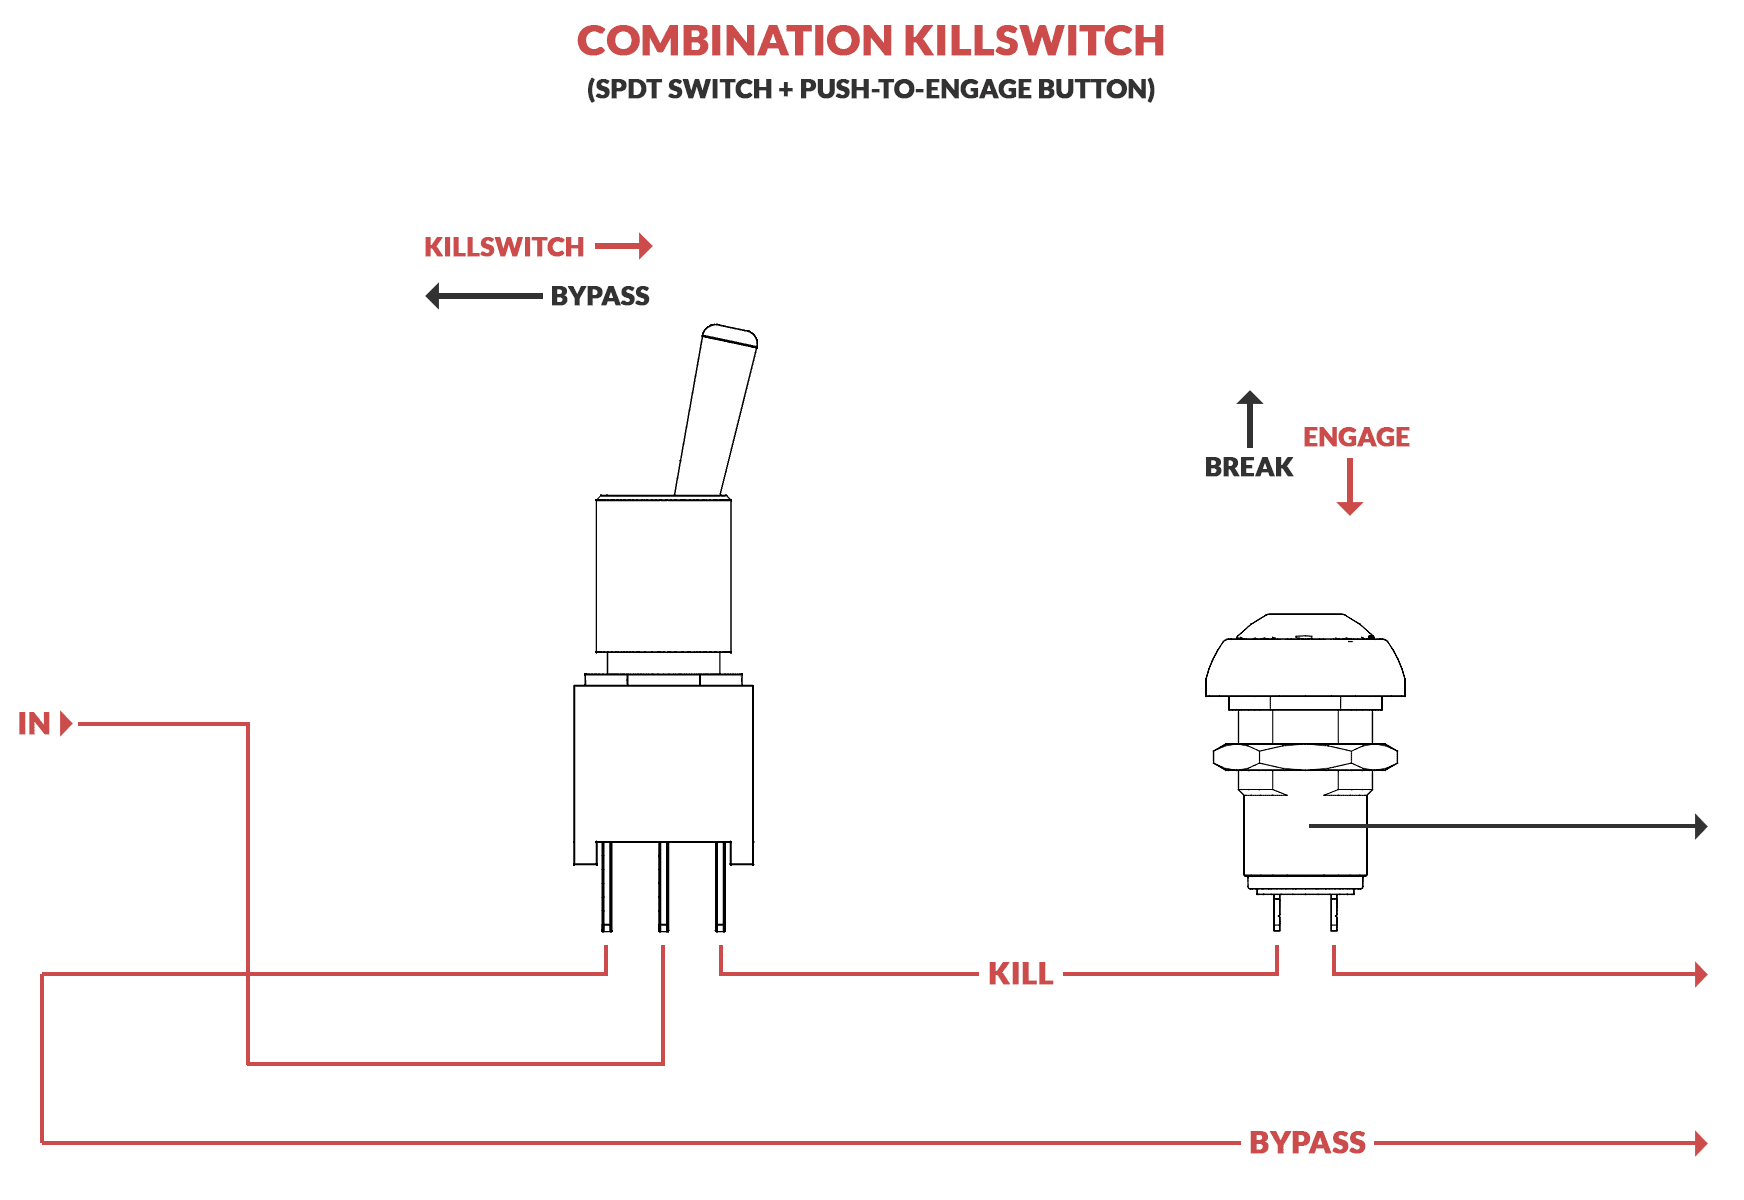 How To Build A Killswitch For Your Guitar Electric Herald Pickup Wiring Noise Circuit Modification Guitars That Combines An Spdt Switch And No Momentary